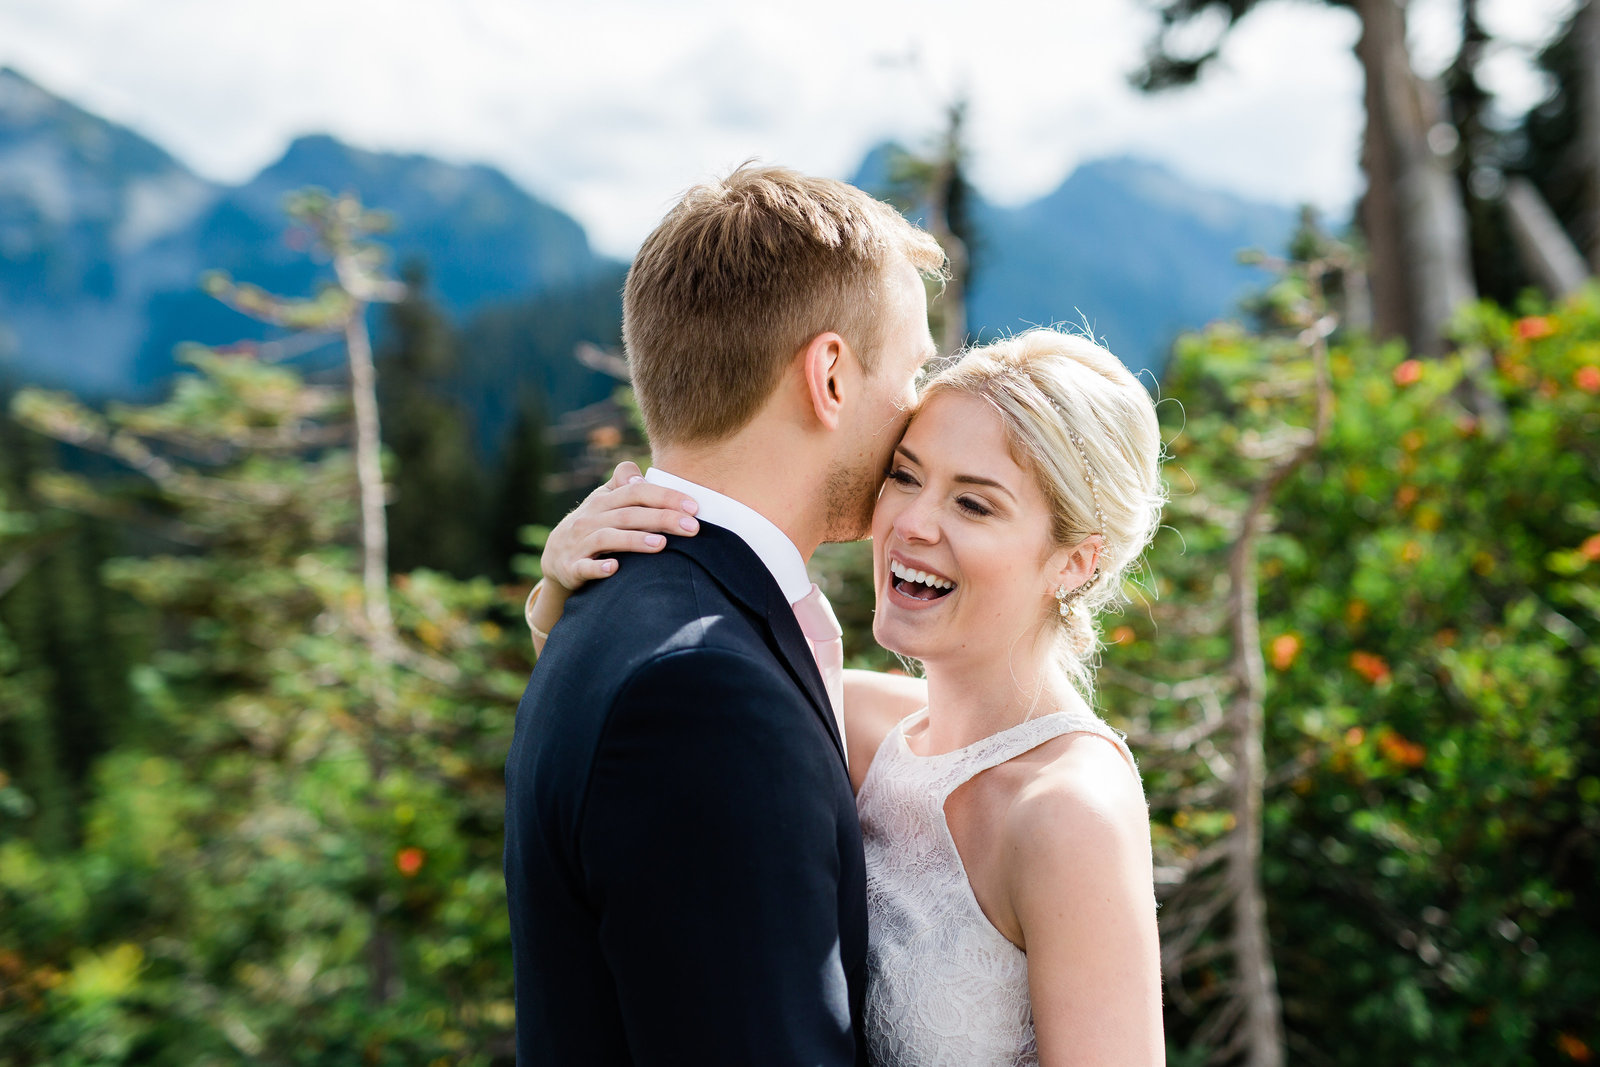 mount-rainier-national-park-elopement-cameron-zegers-photographer-seattle-189